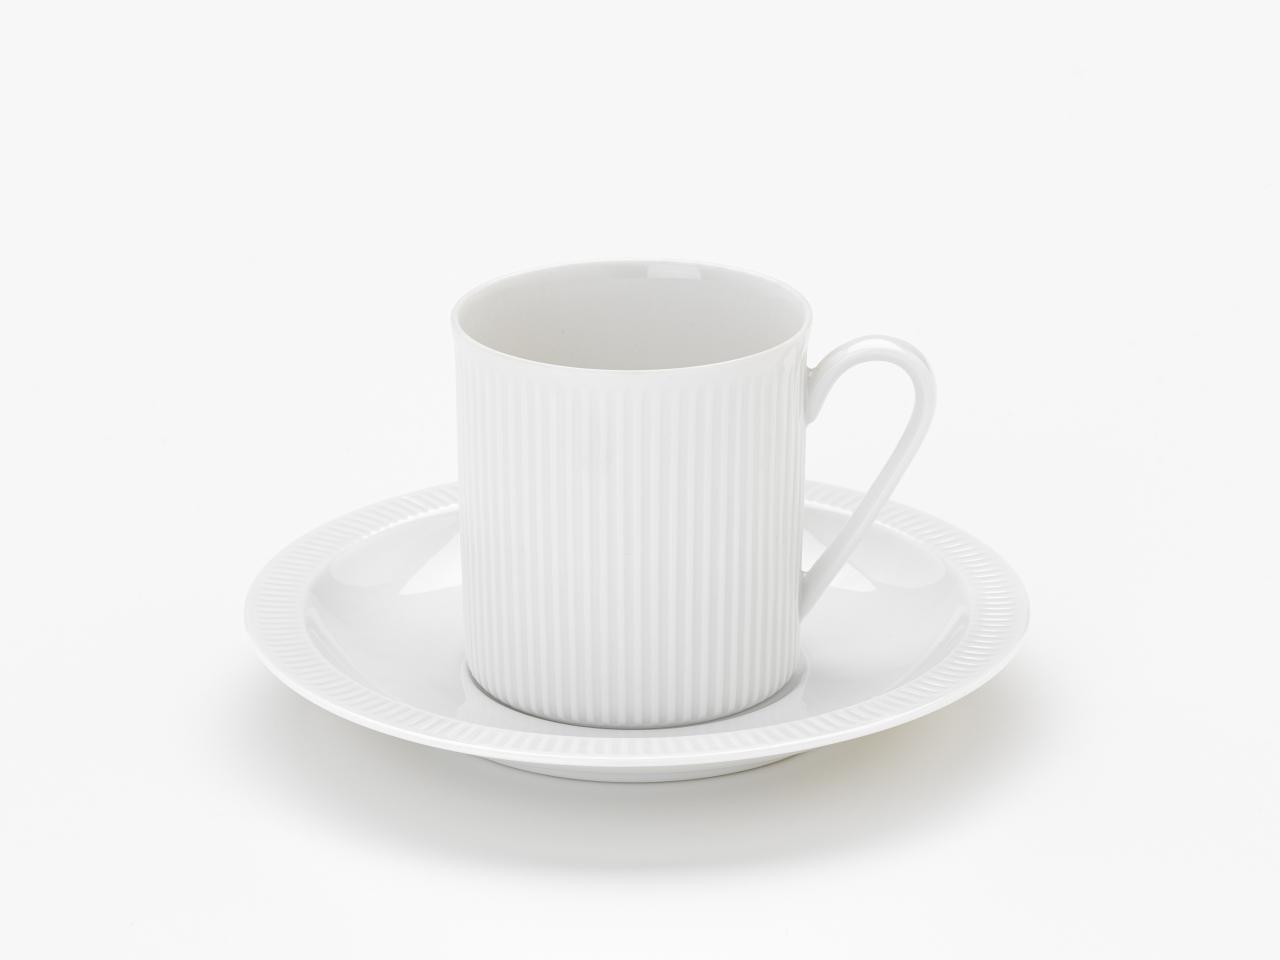 Form 2075, cup and saucer